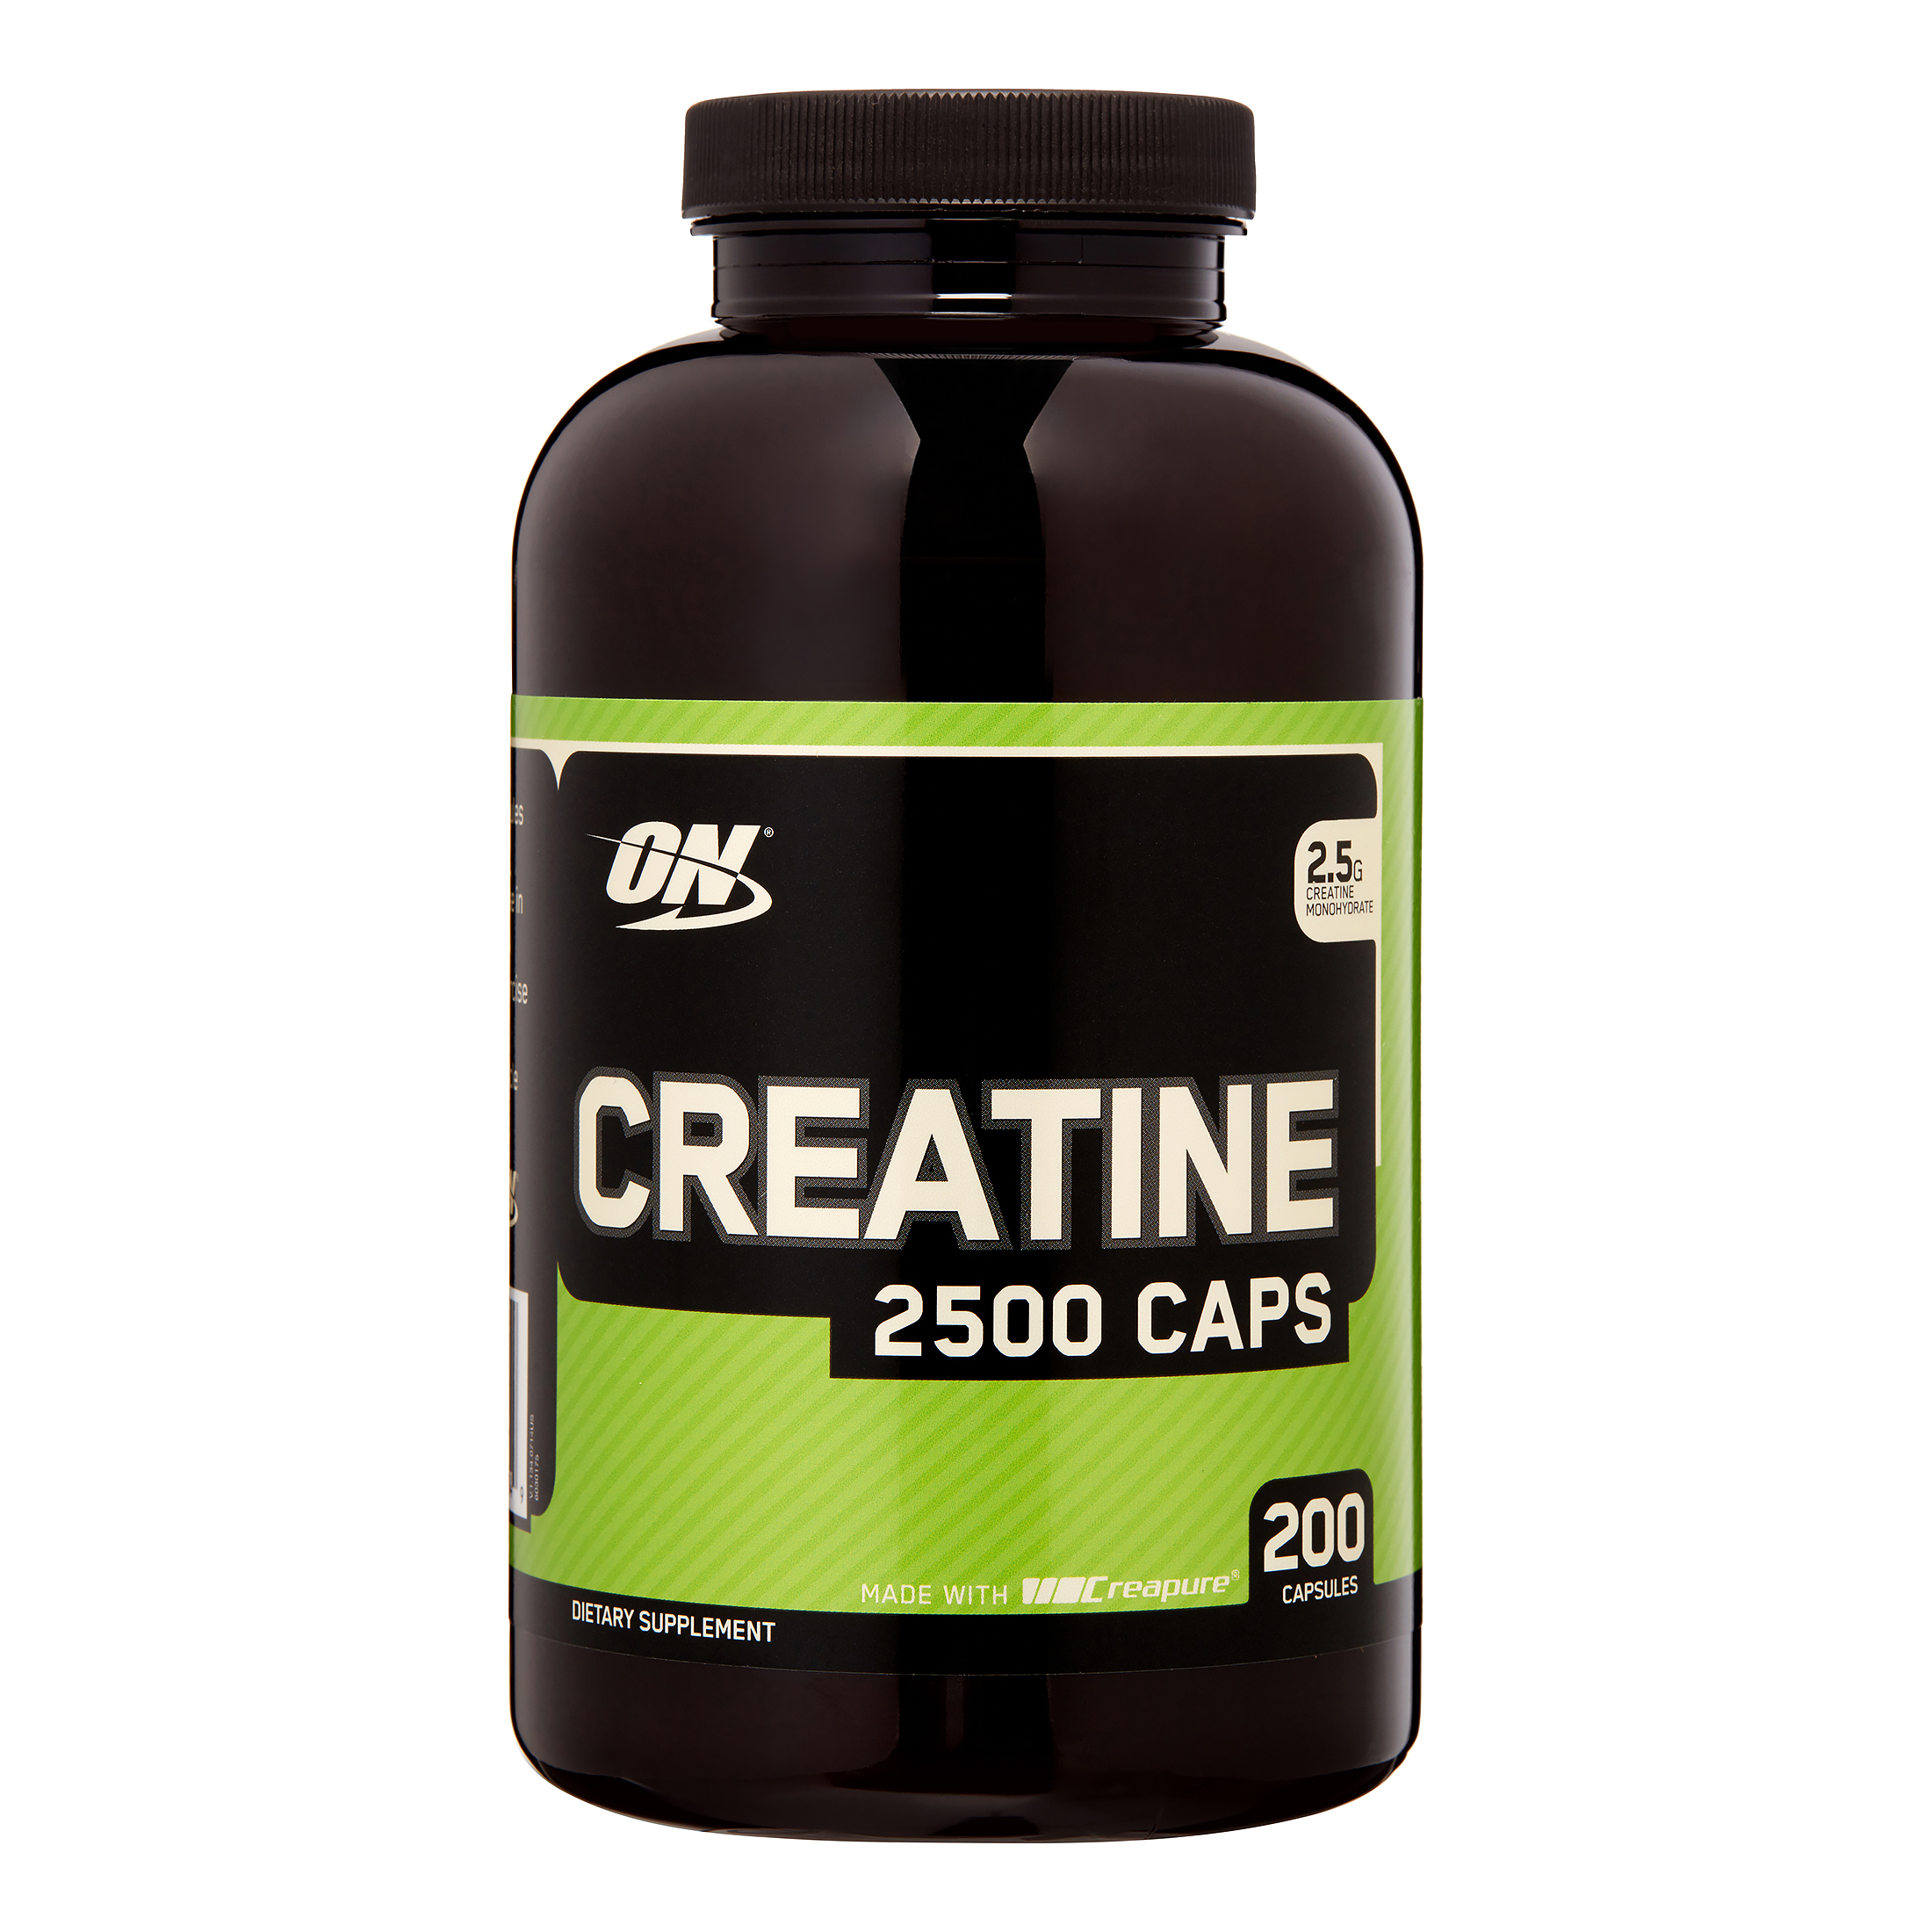 Optimum Nutrition Creatine 2500 Capsules, 200 Ct